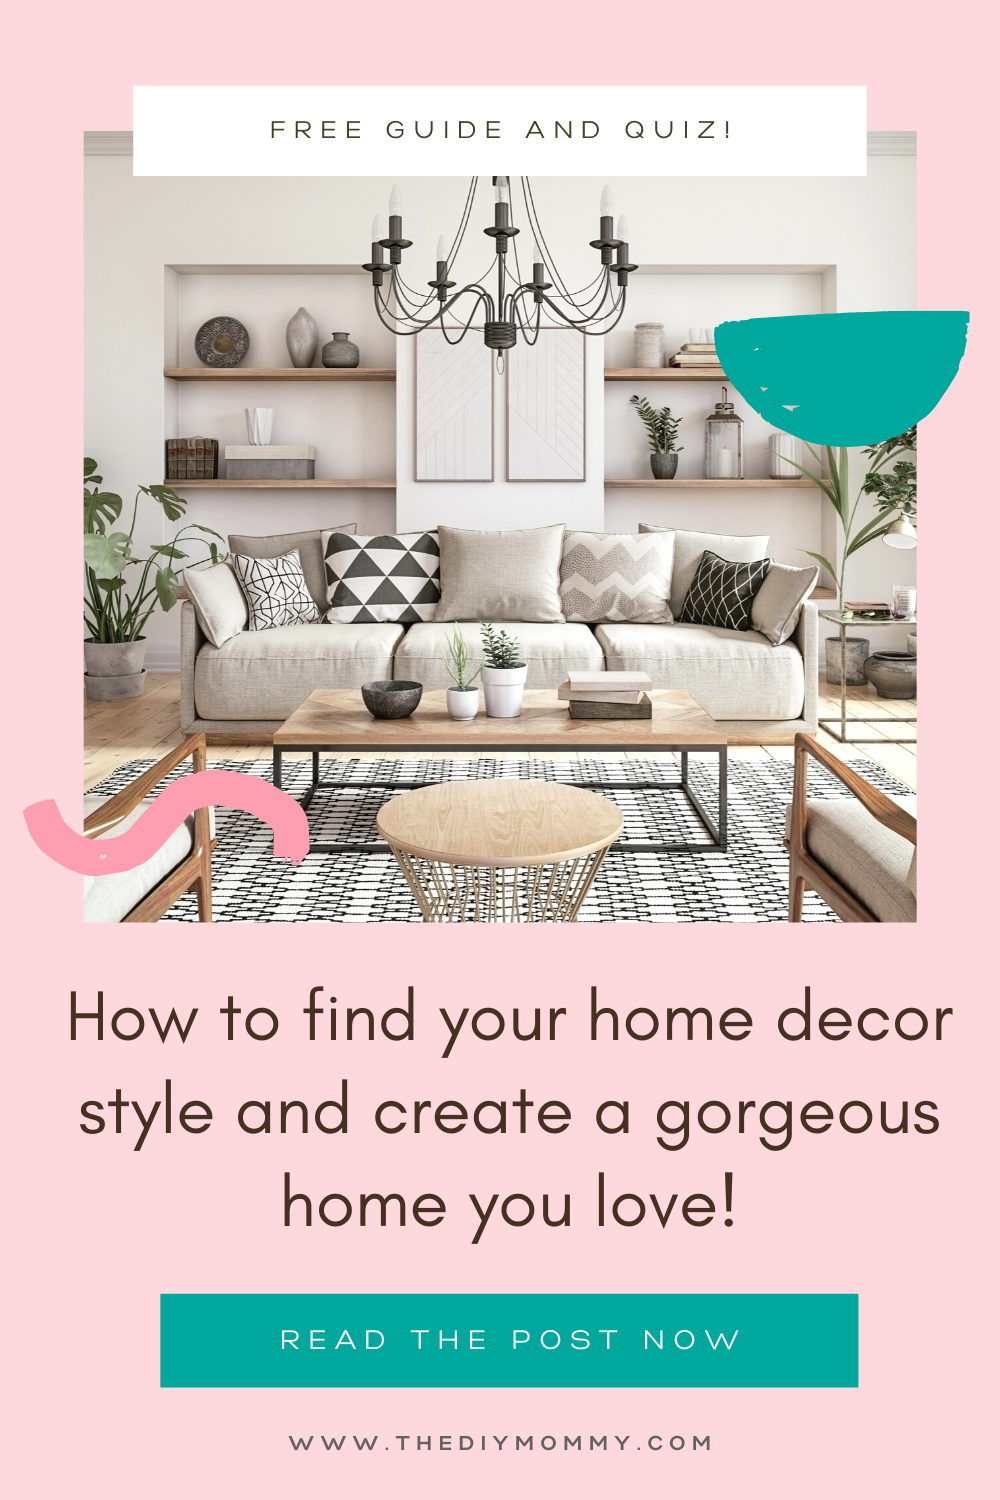 How to find my home decor style